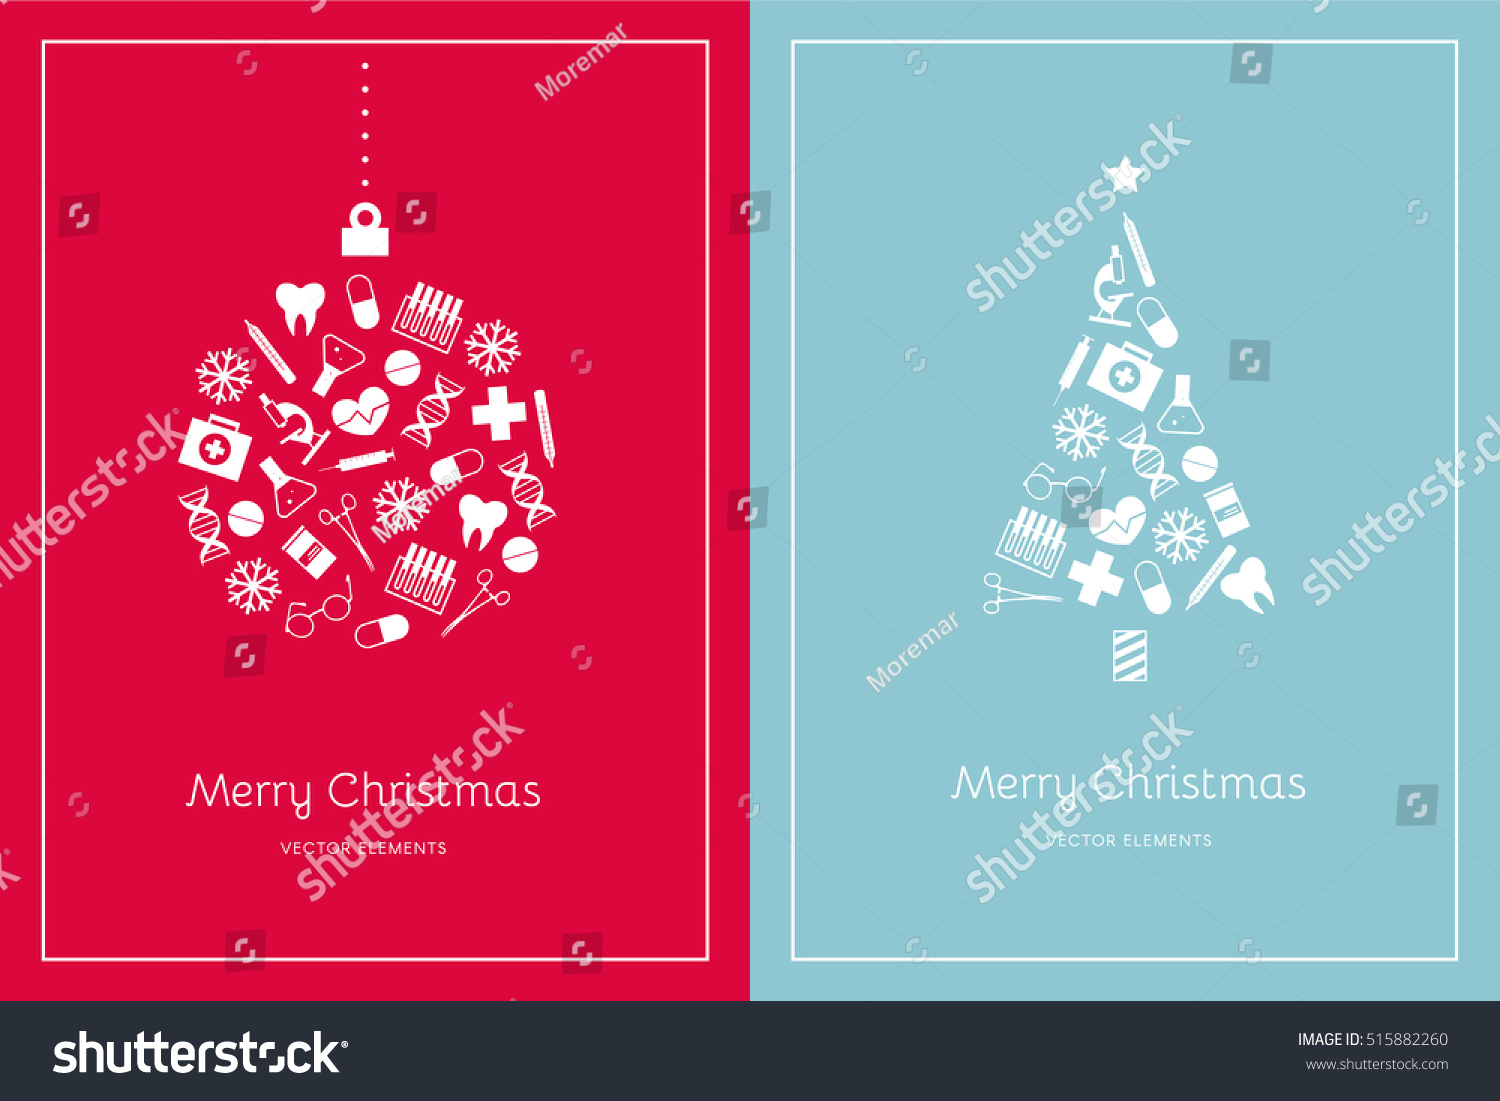 Two Christmas Cards On Red Light Stock Vector (Royalty Free ...